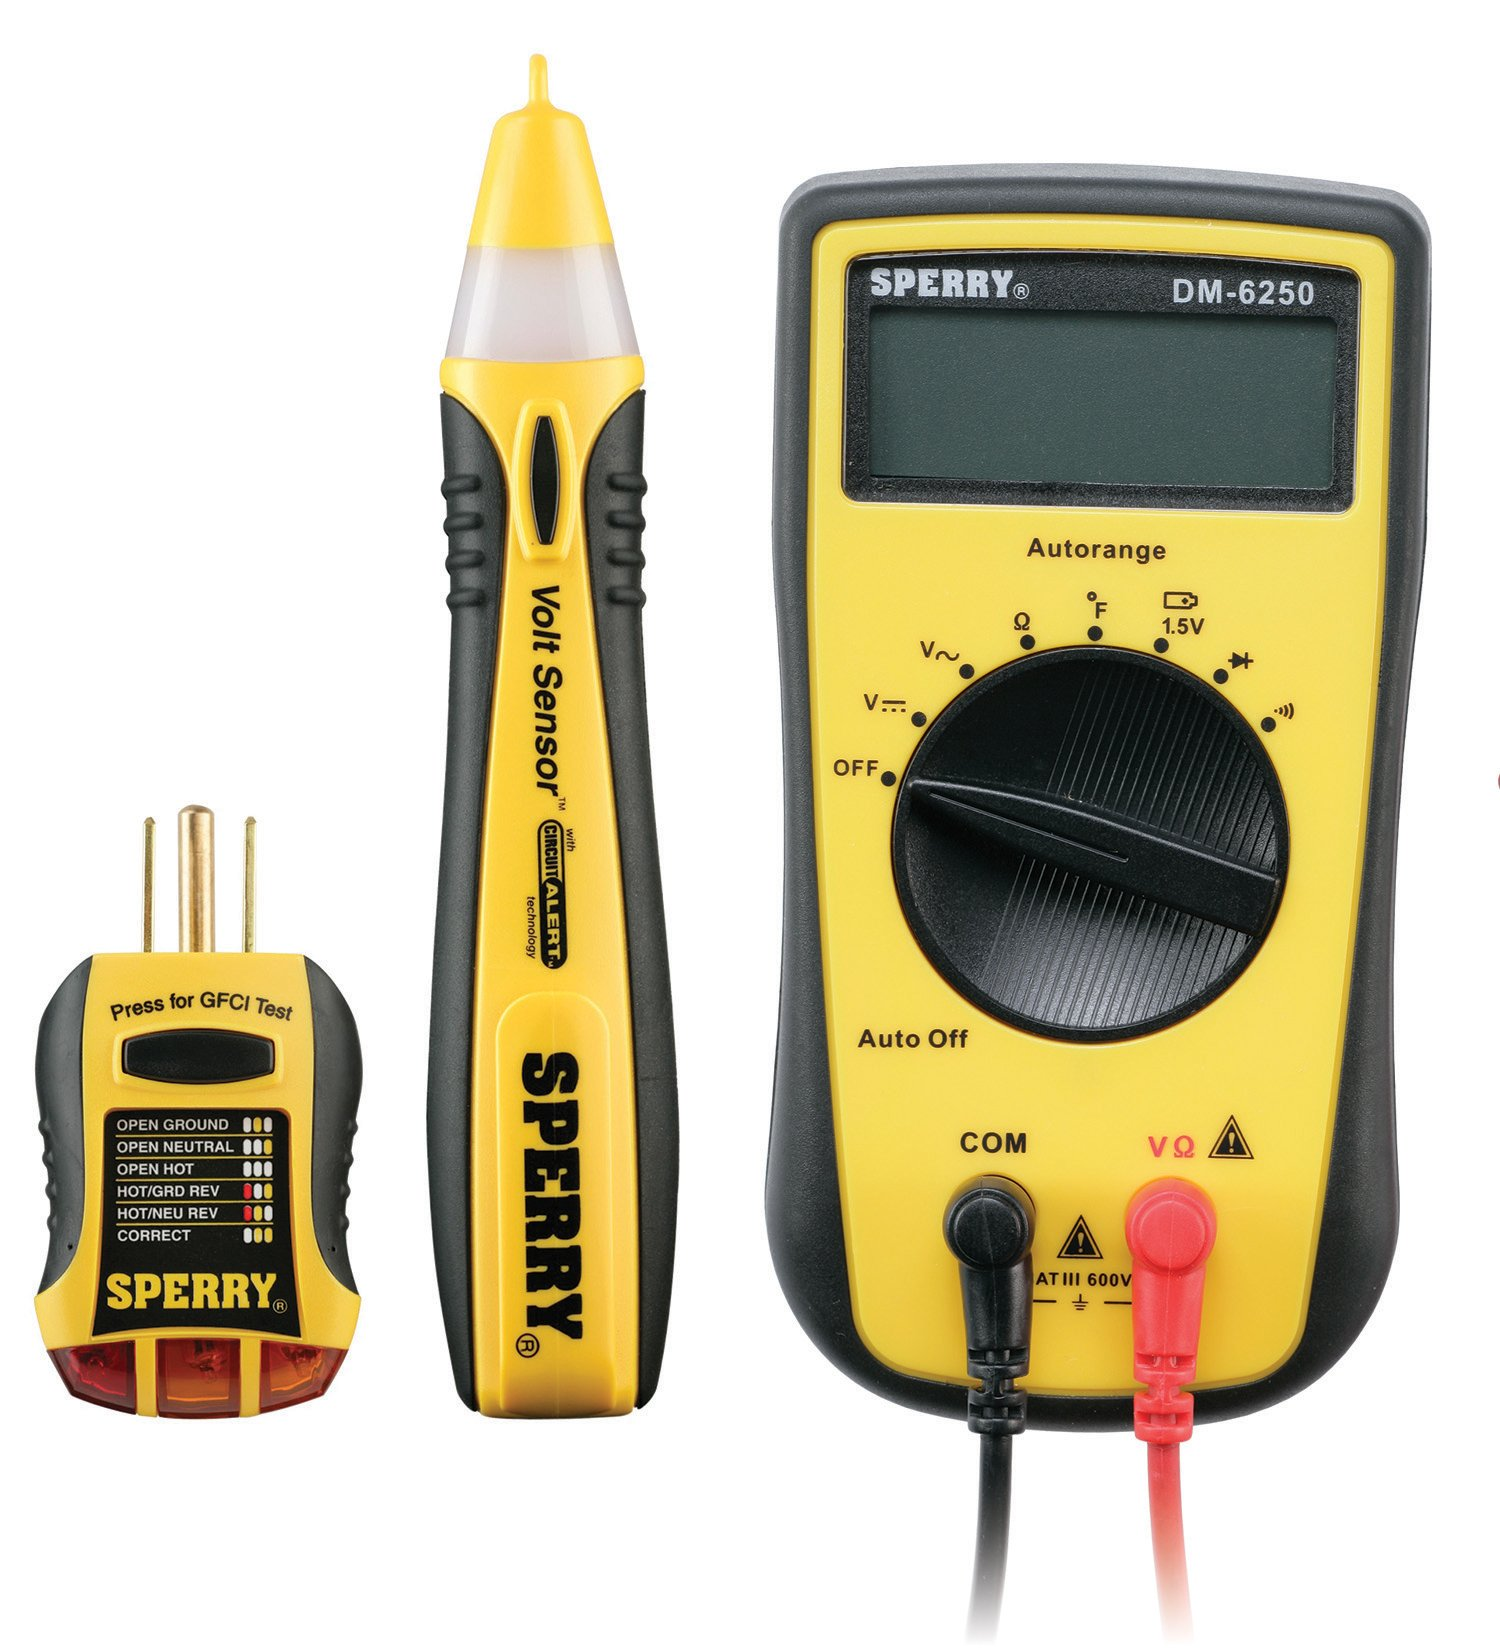 Sperry Instruments SK-1 Professionals Essential 3-Piece Electrical Kit: Non-Contact Voltage (VD6504), GFCI Outlet Tester (GFI6302), 7 Function Digital Multi-Meter (DM6250)